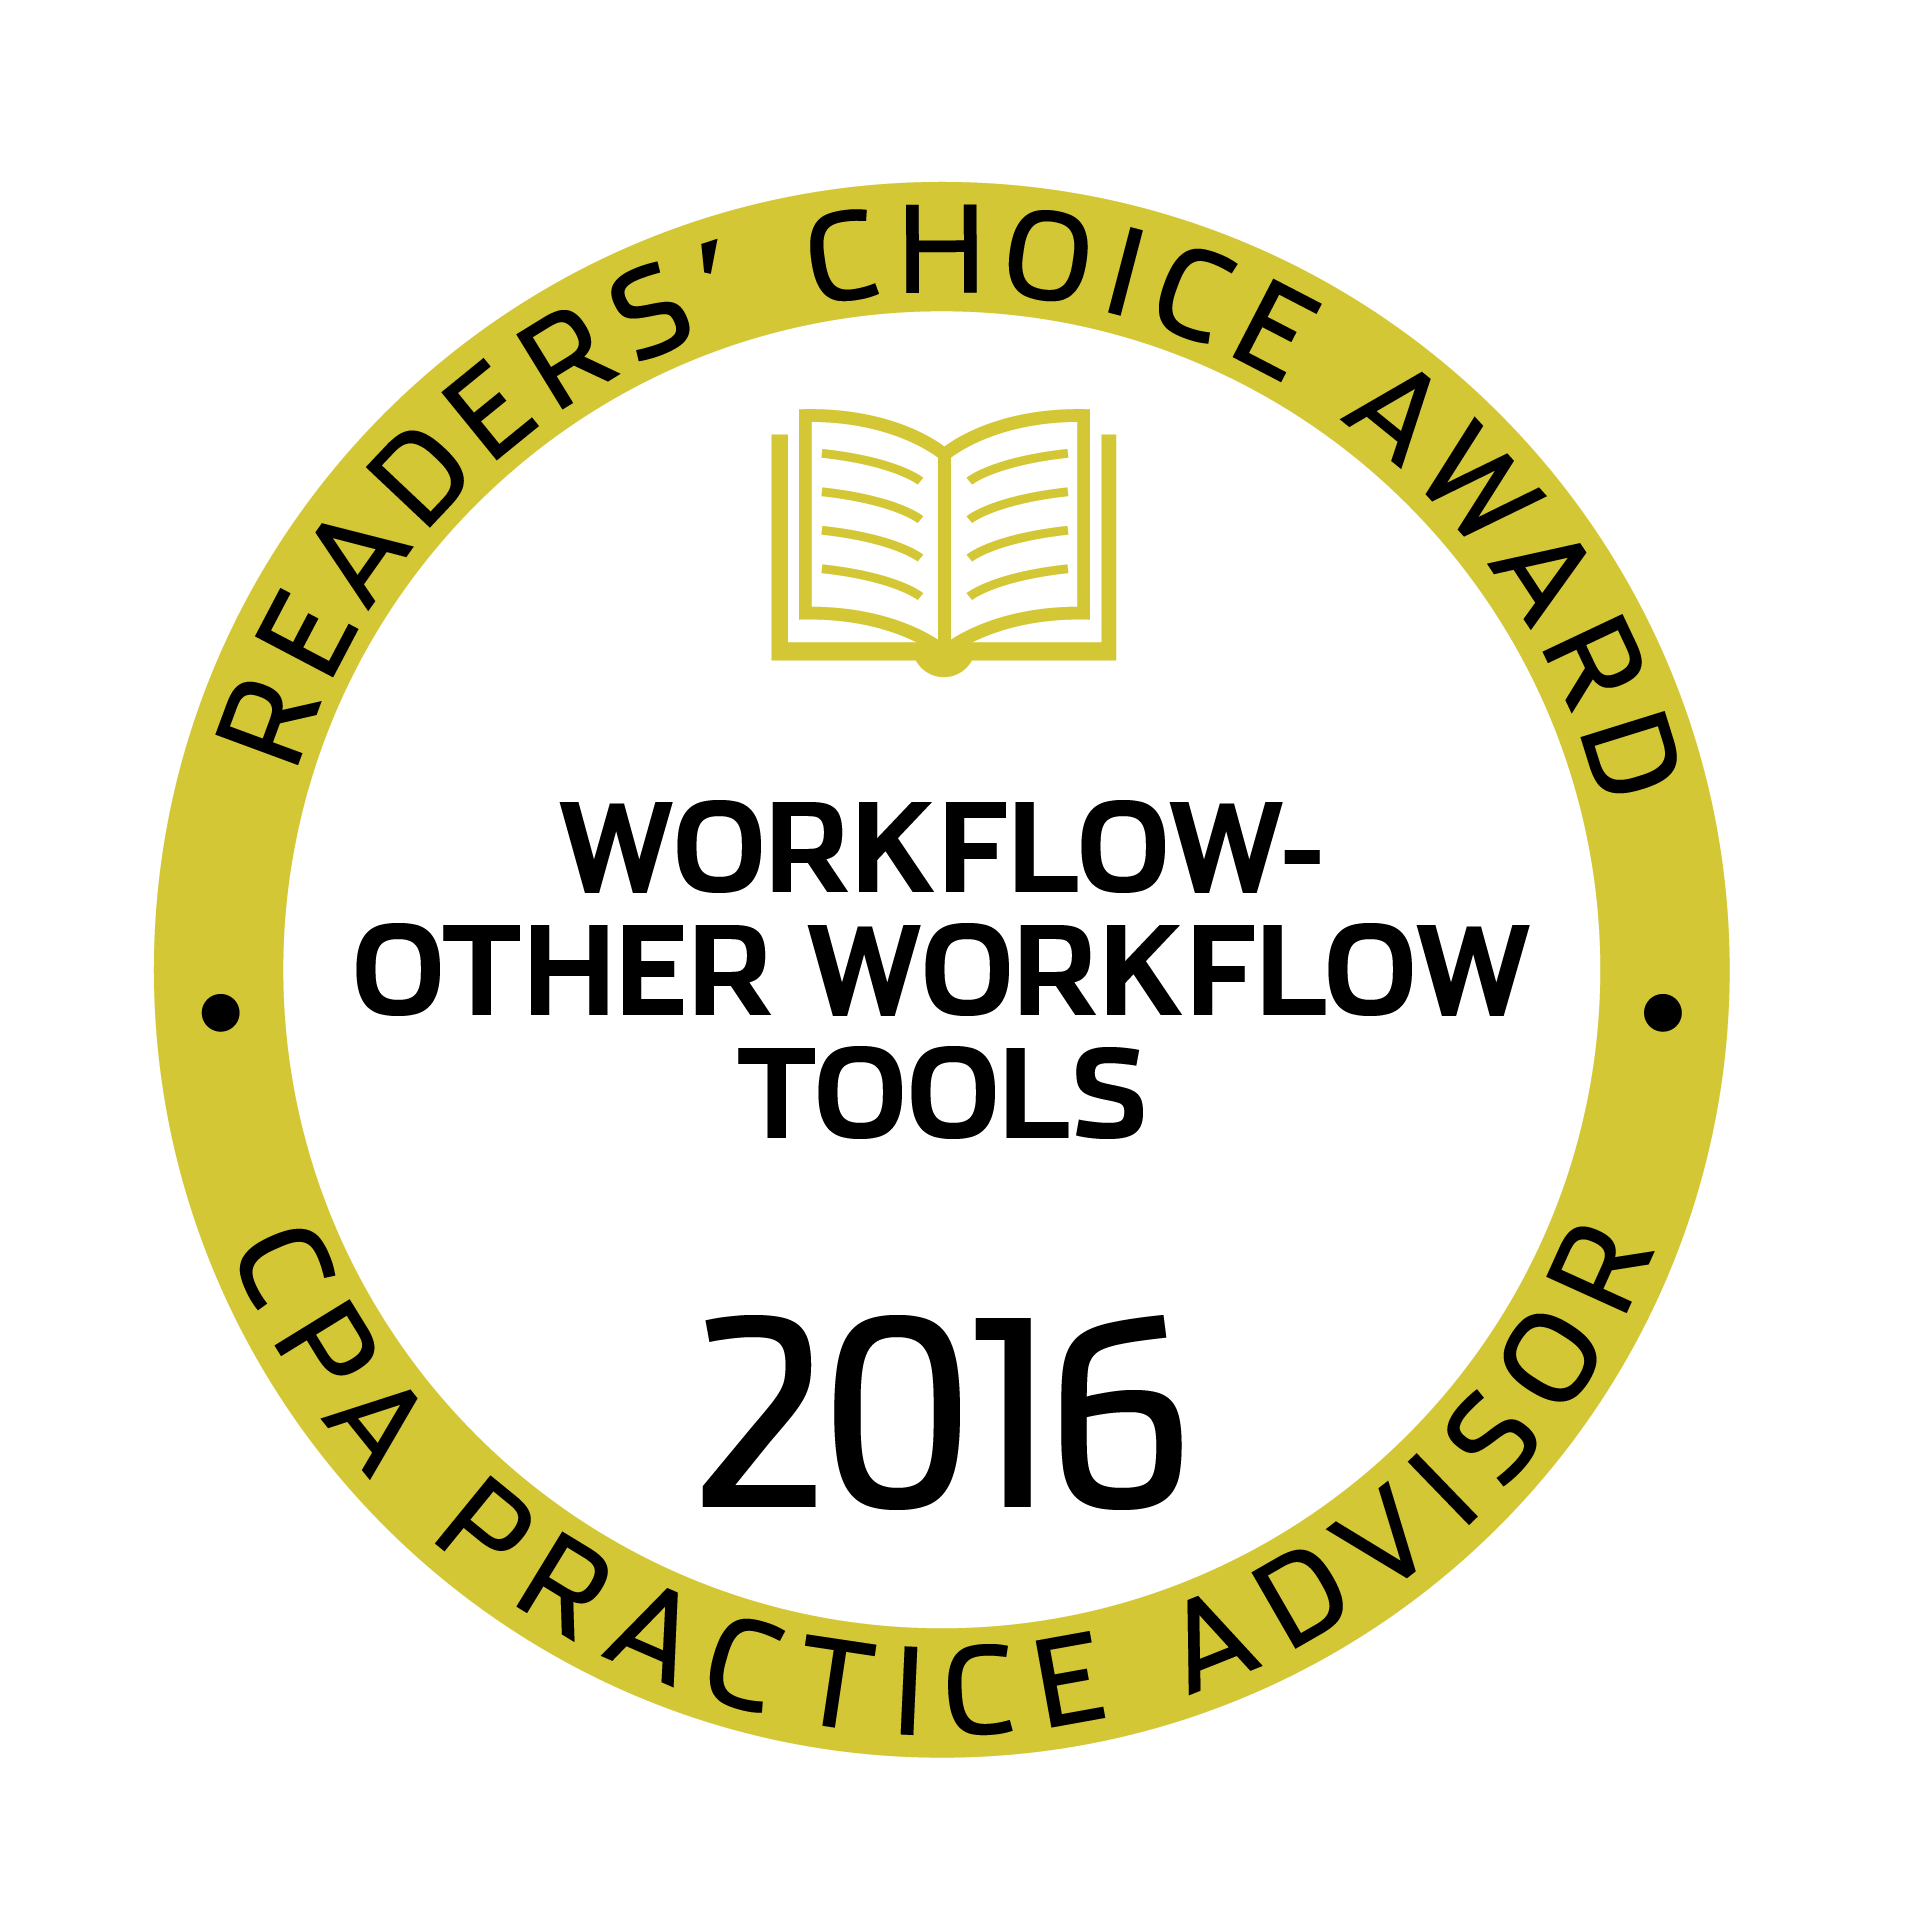 GWX-285 2016 Readers' Choice Award Graphics3